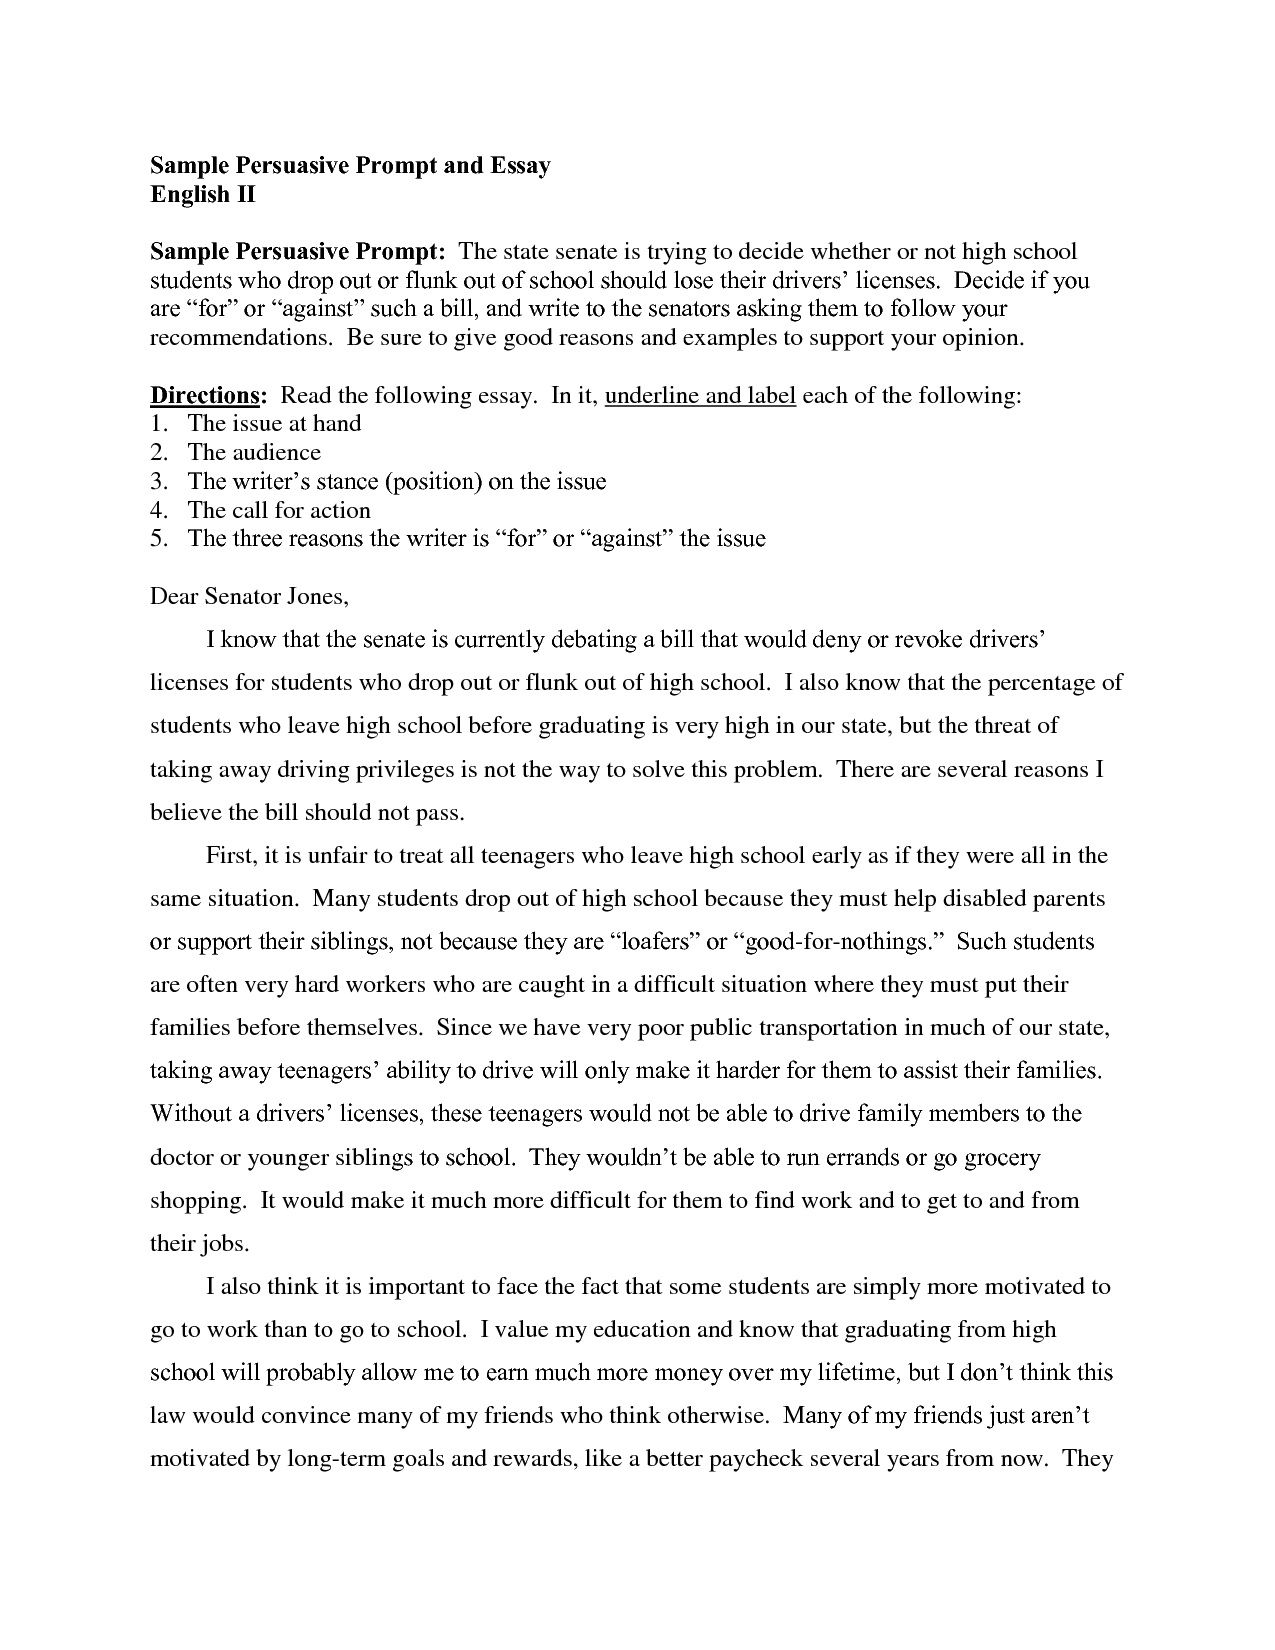 Research Paper Essay Example  Teaching Essay Writing High School also Proposal For An Essay Samples Of Persuasive Essays For High School Students  Argumentative Essay Thesis Statement Examples